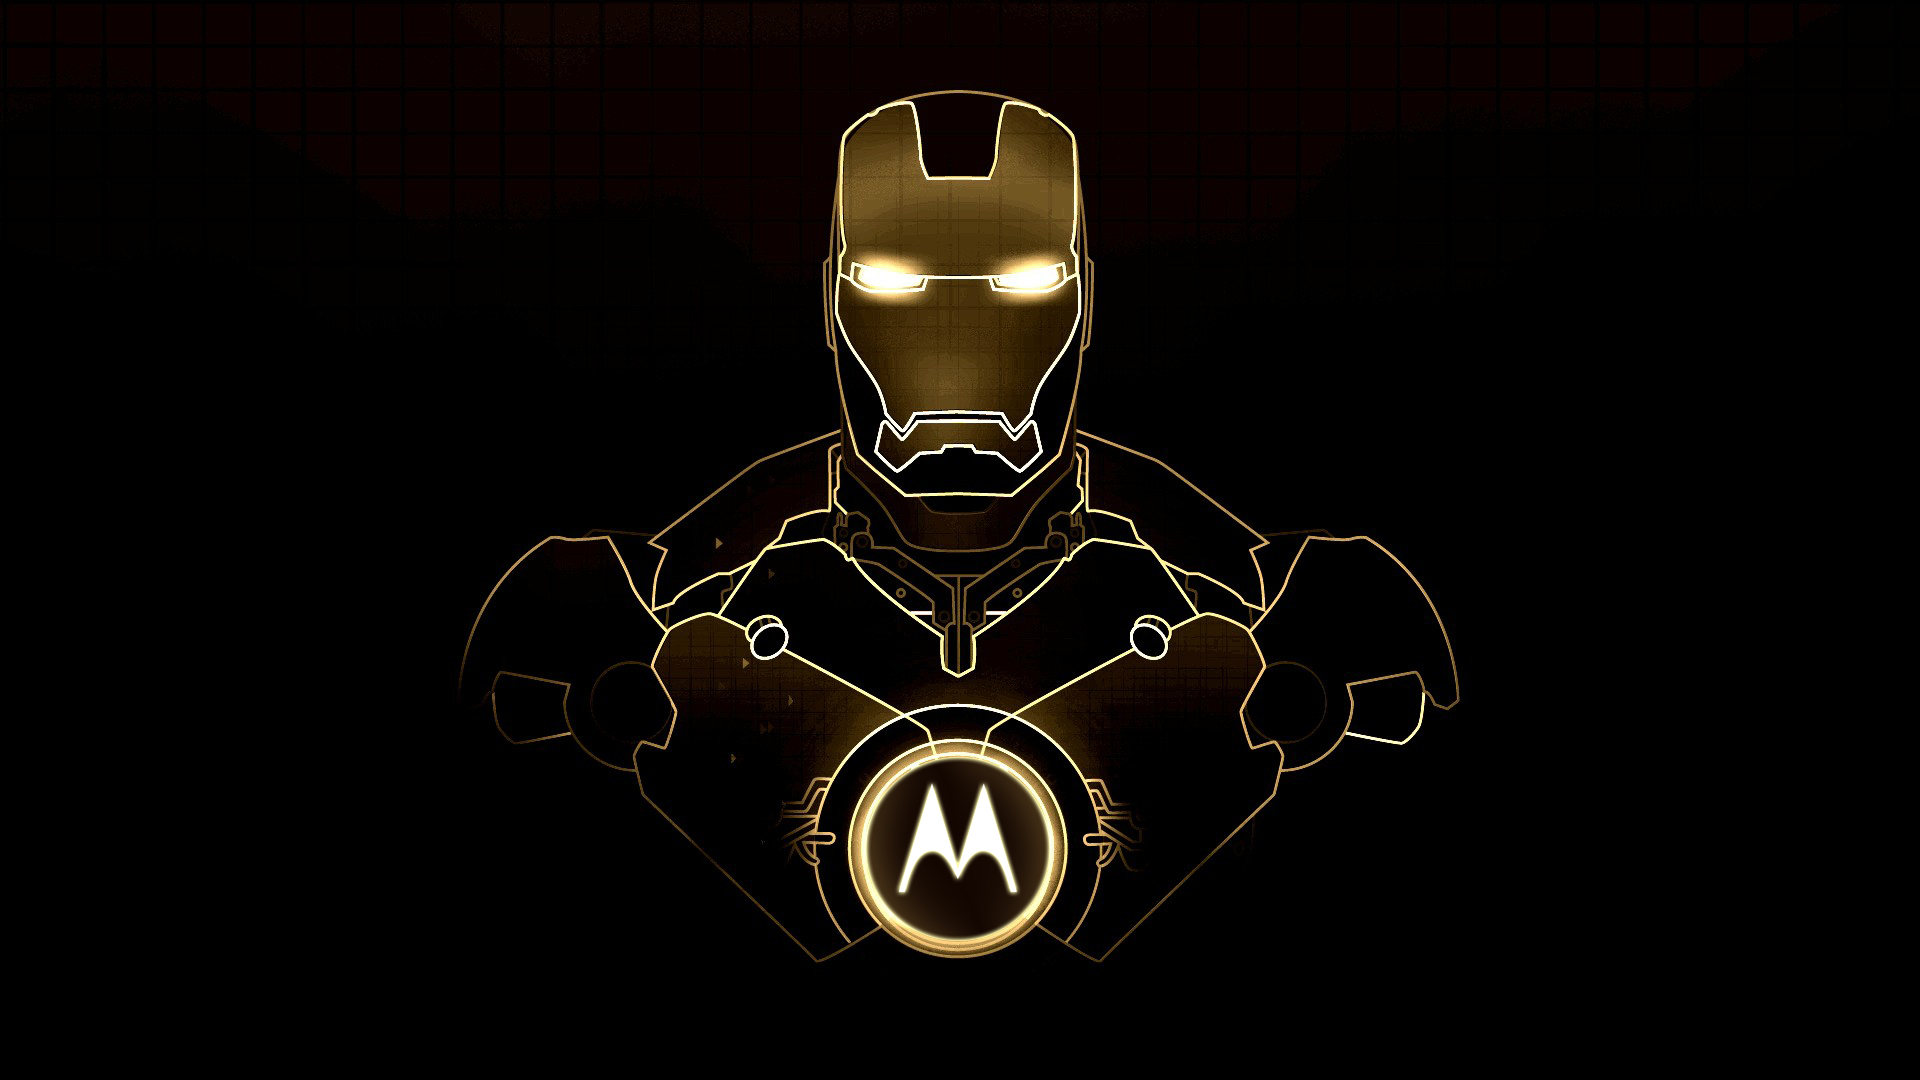 Best 53 Motorola Wallpaper On HipWallpaper